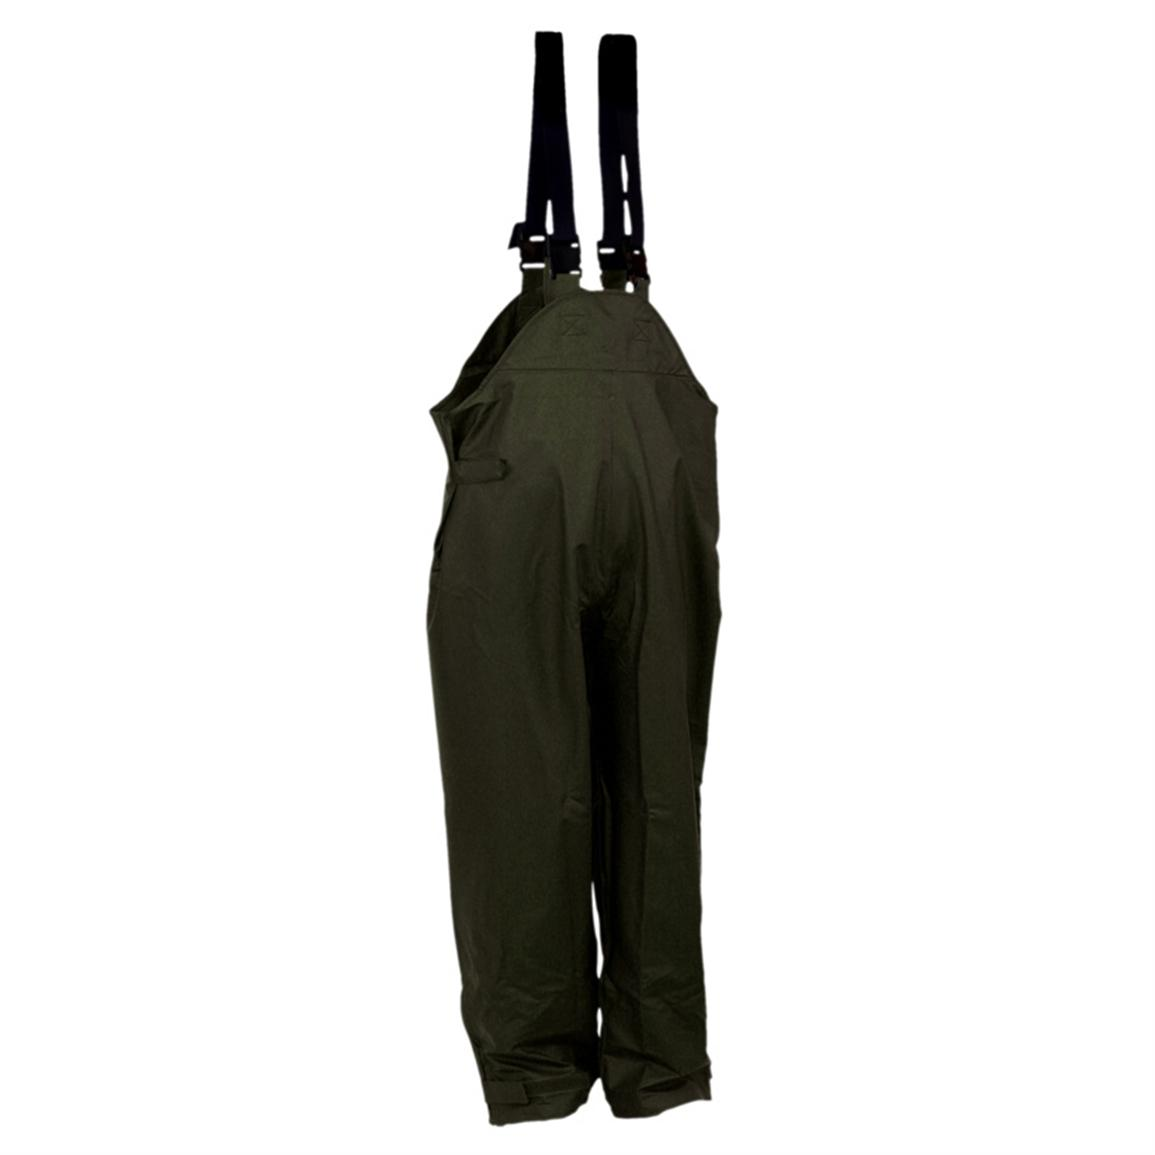 Men's WATERPROOF StormHide Down Pour Bibs from Gamehide, Loden